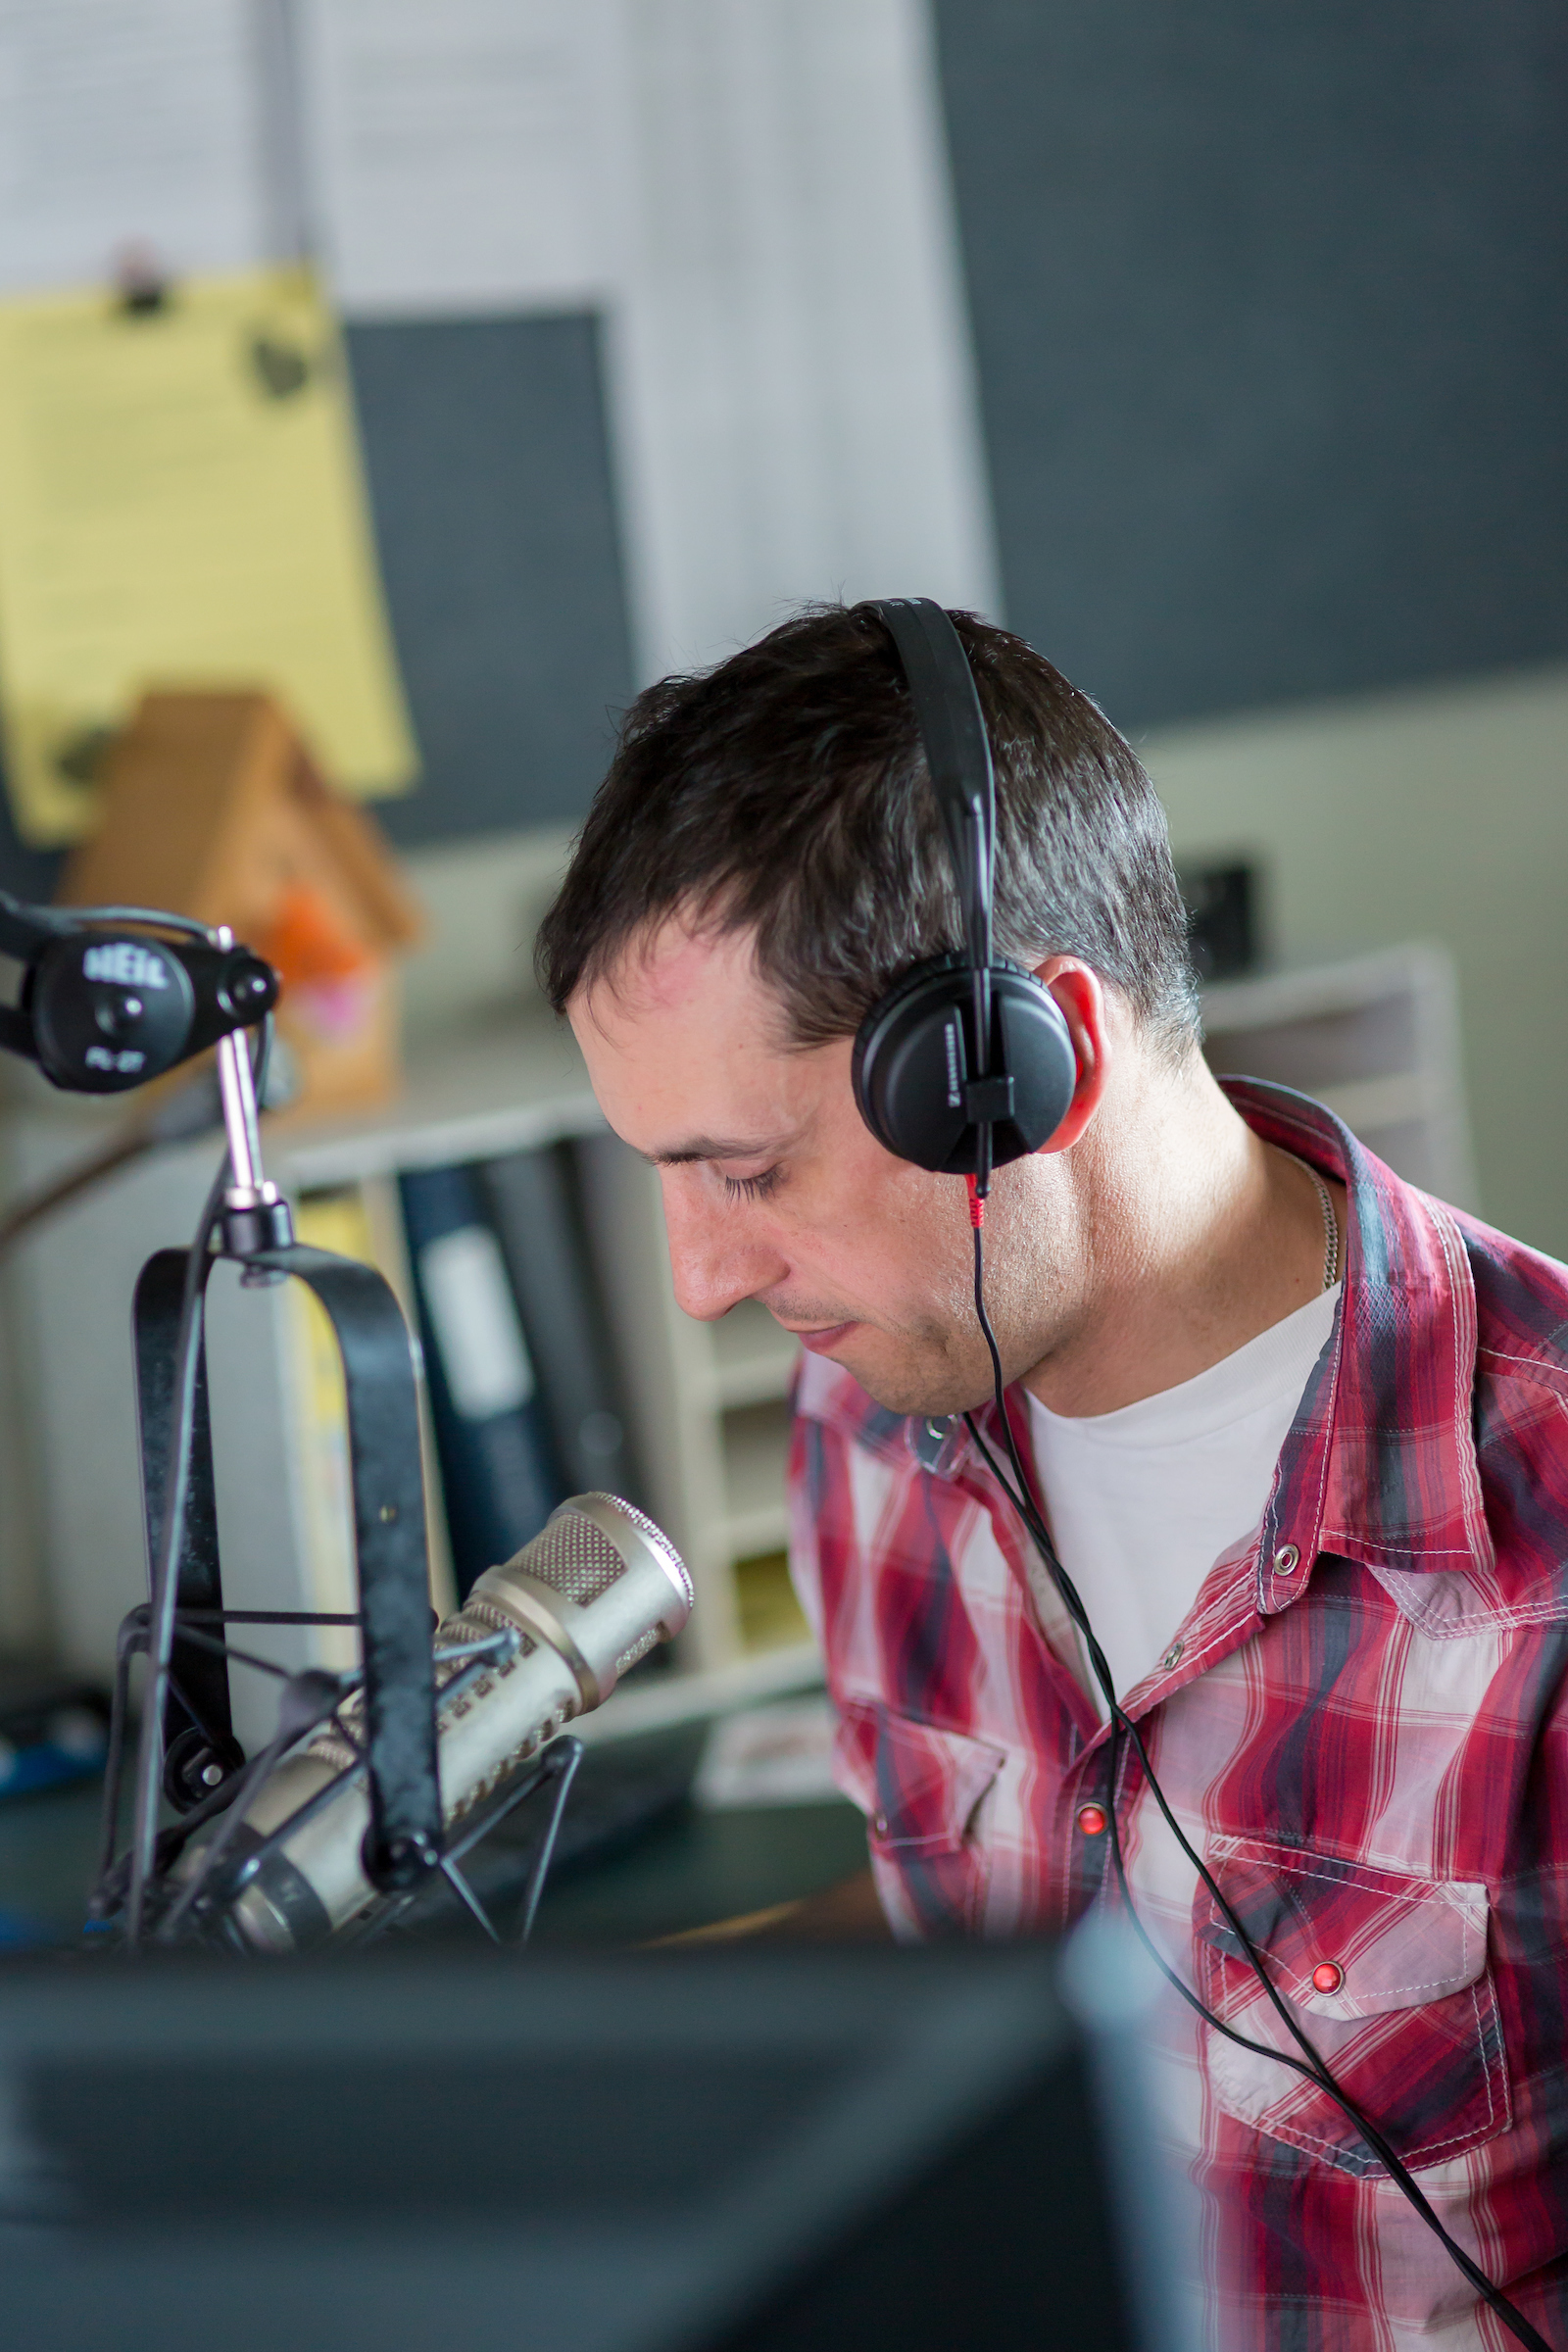 A radio host works in a sound booth. He wears headphones and sits in front of a microphone.